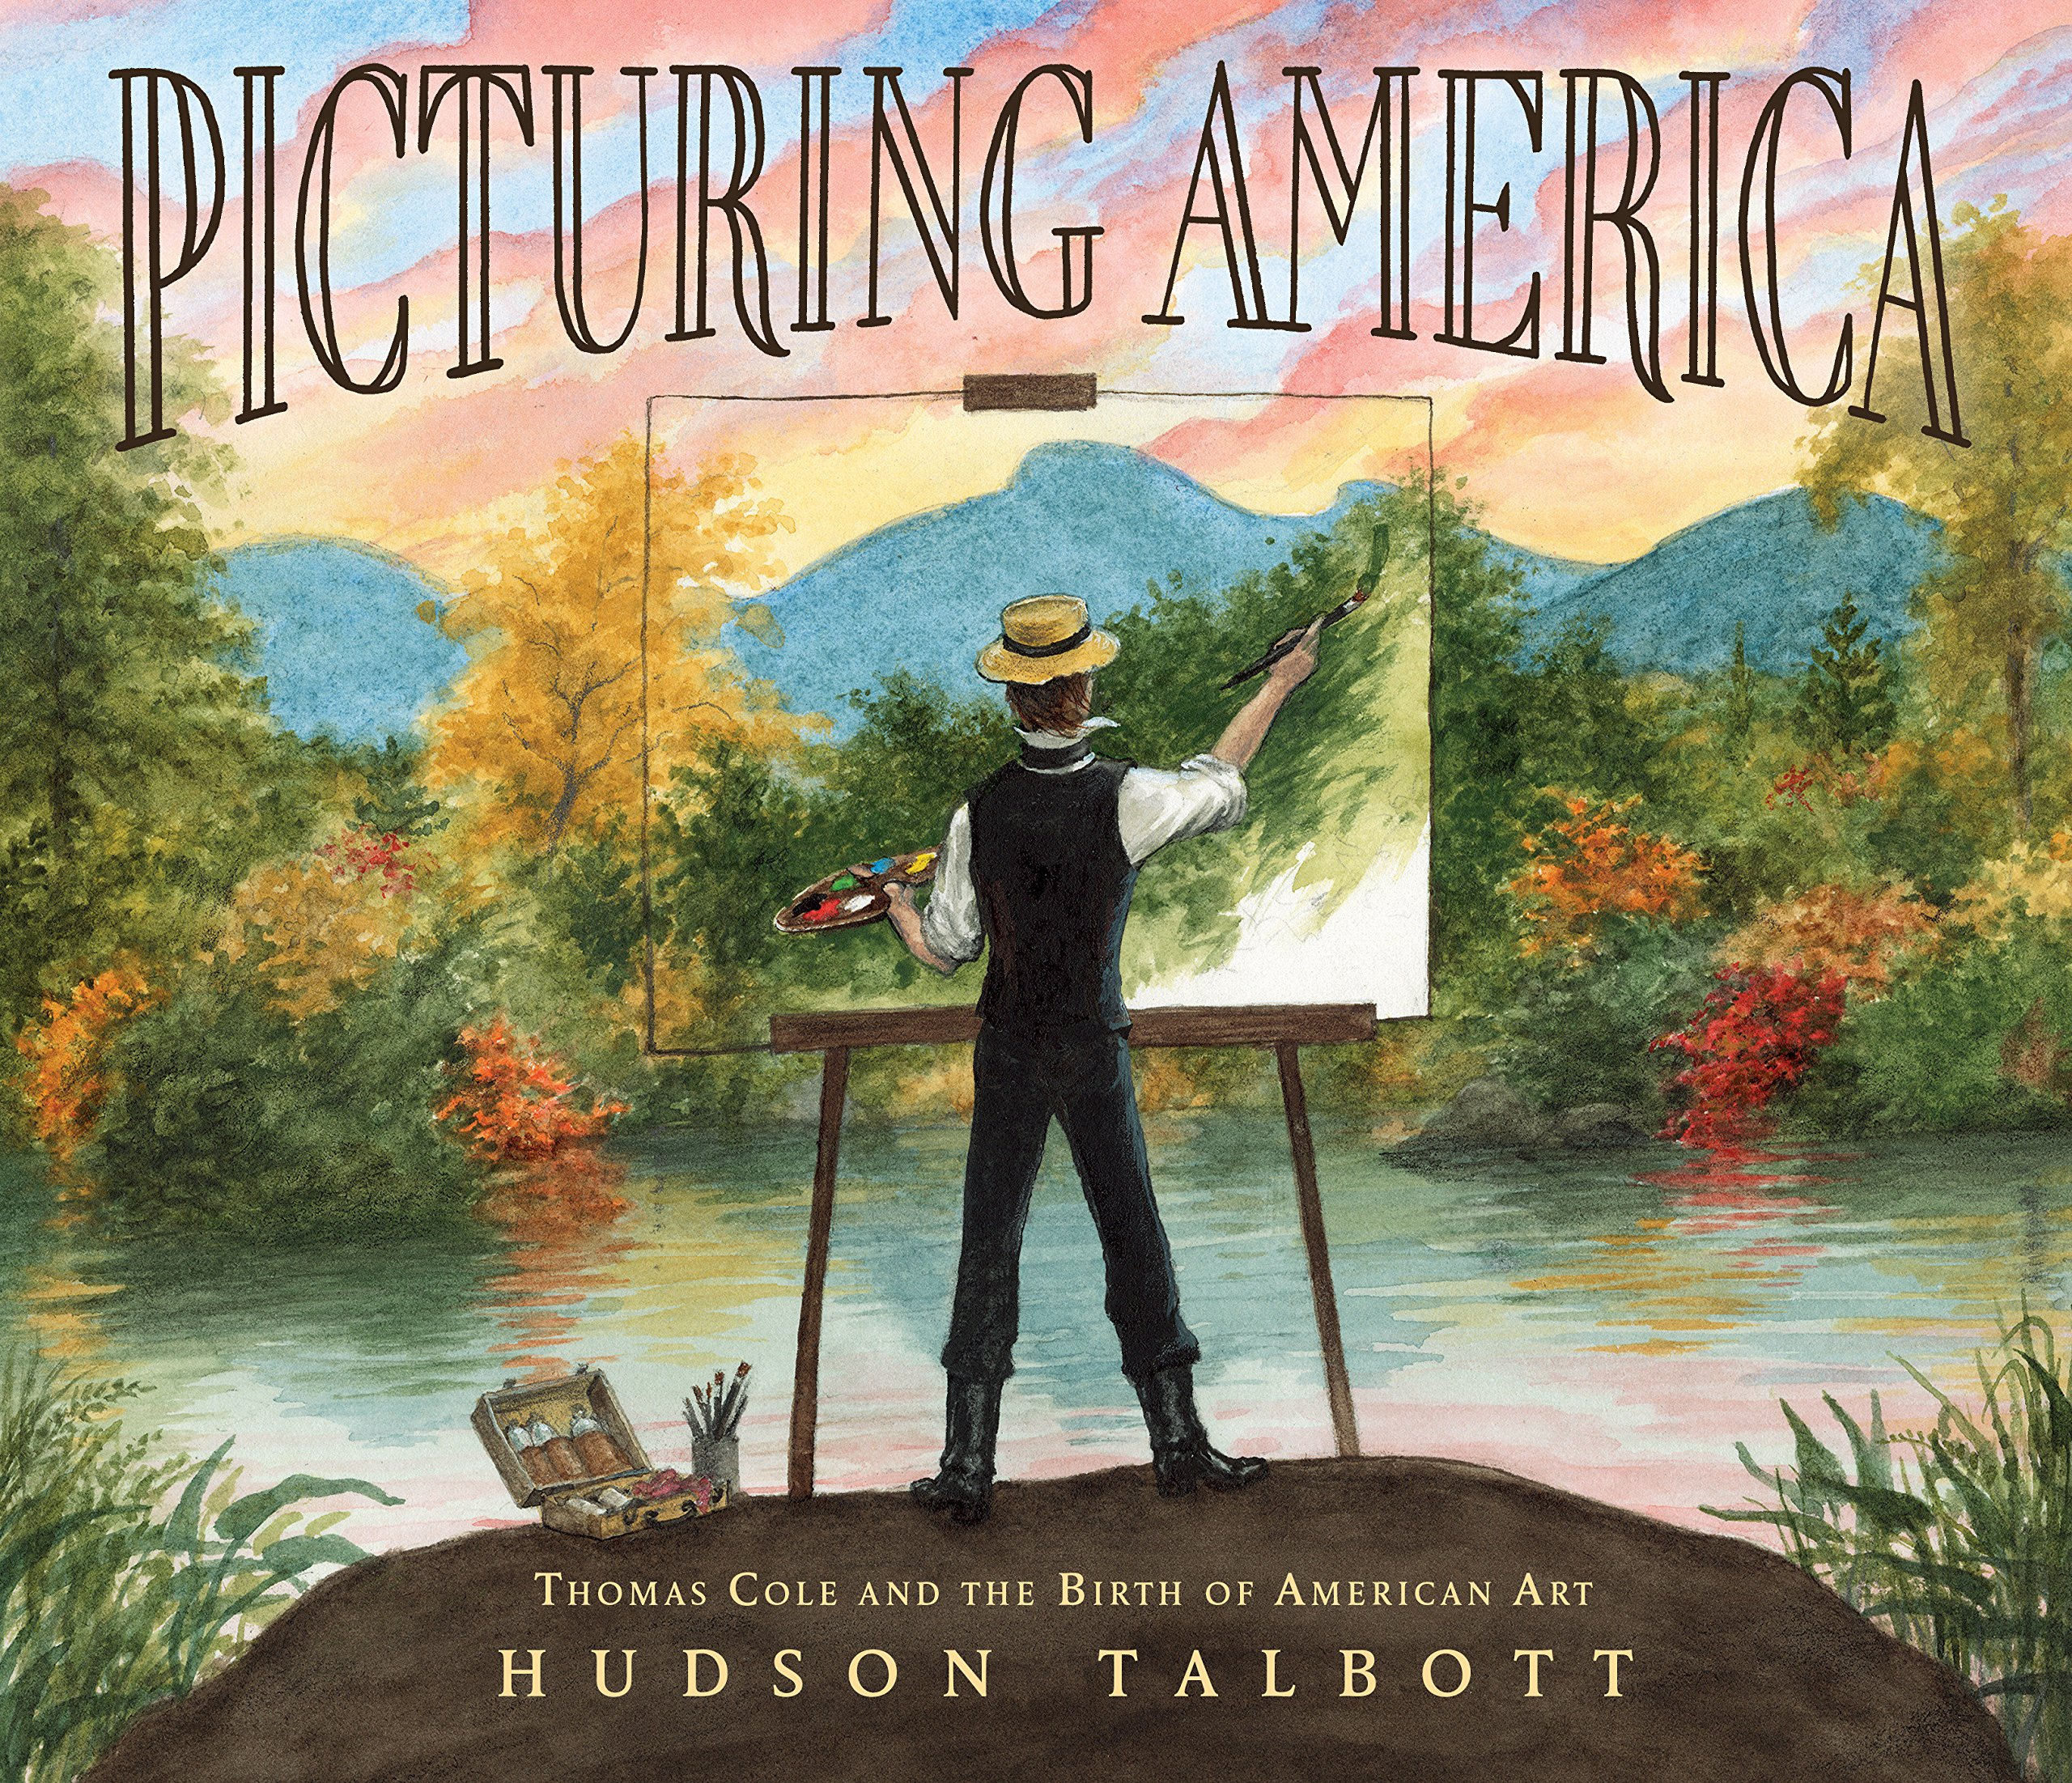 Image result for picturing america talbott amazon